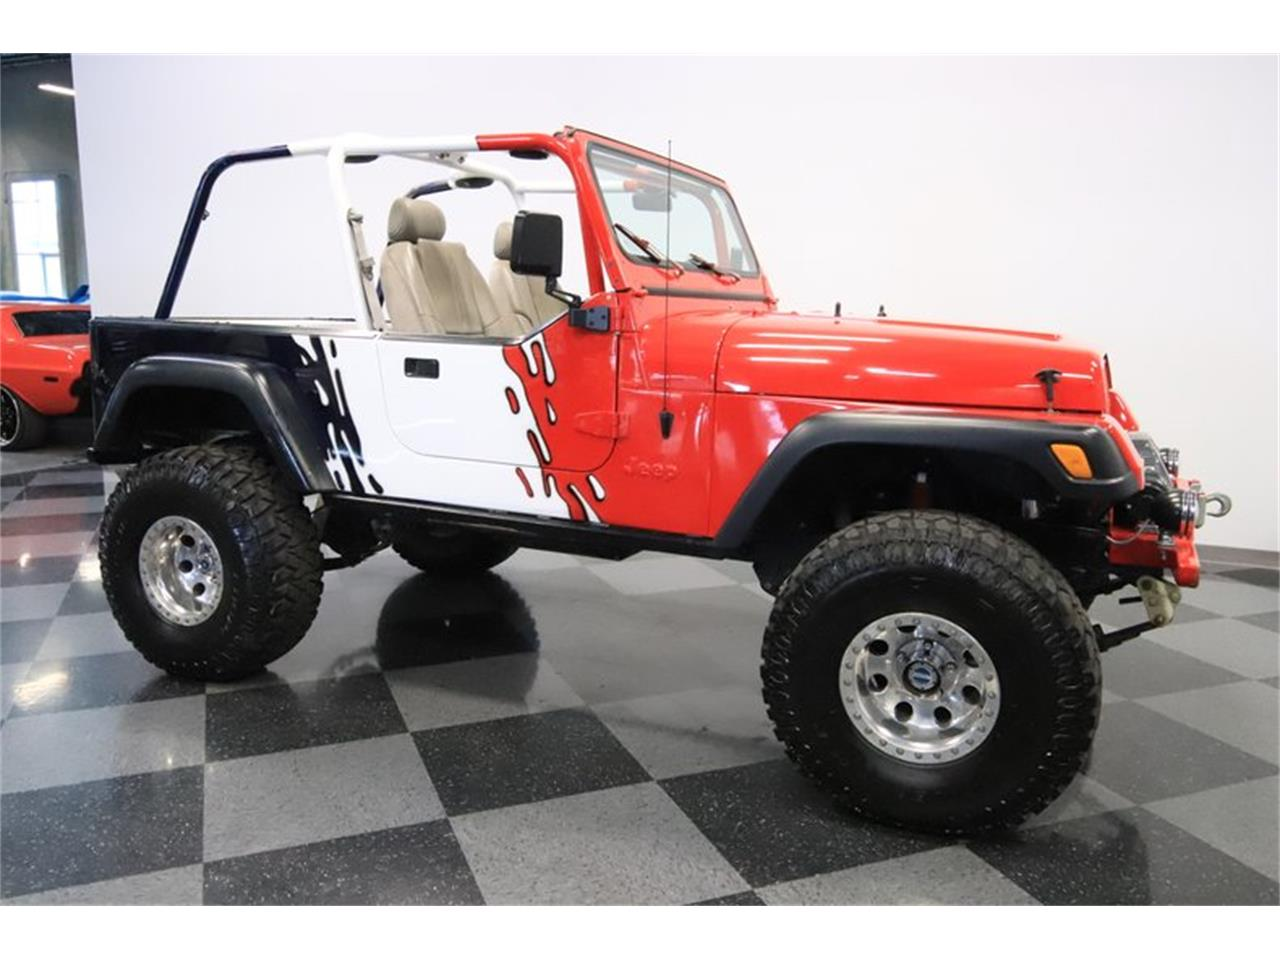 1983 Jeep CJ8 Scrambler for sale in Mesa, AZ – photo 15